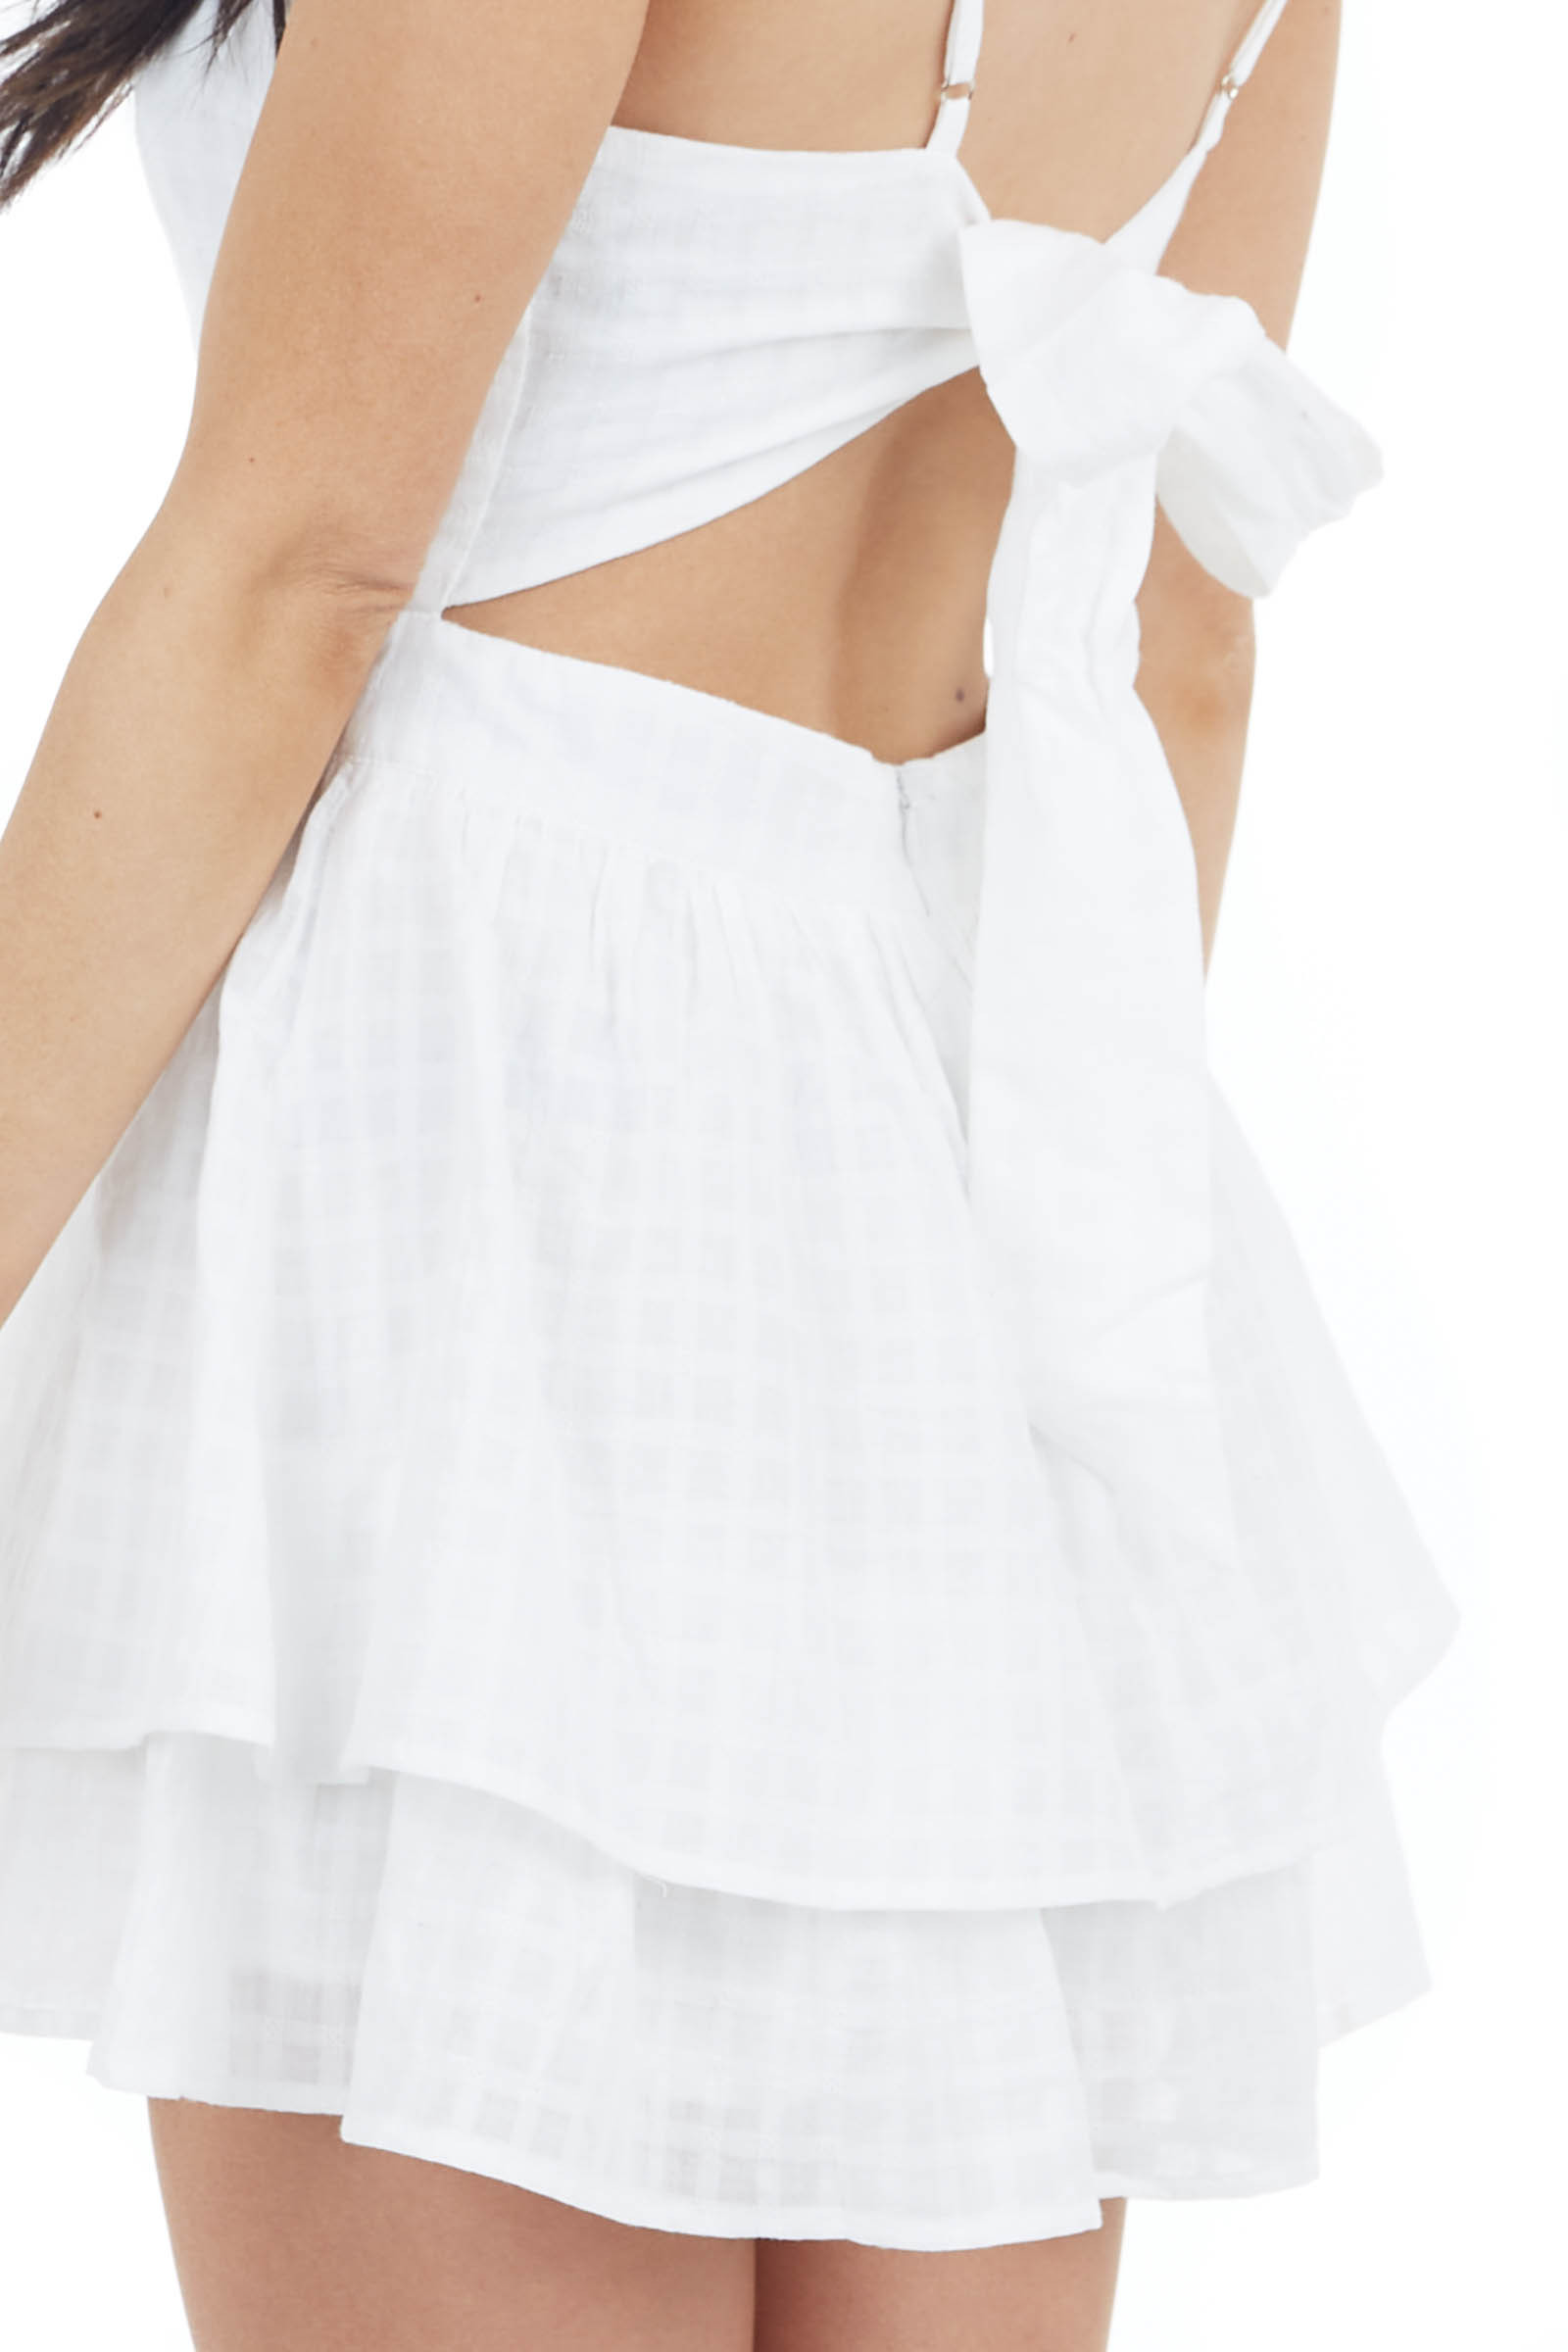 Off White Ruffled Romper with Adjustable Spaghetti Straps